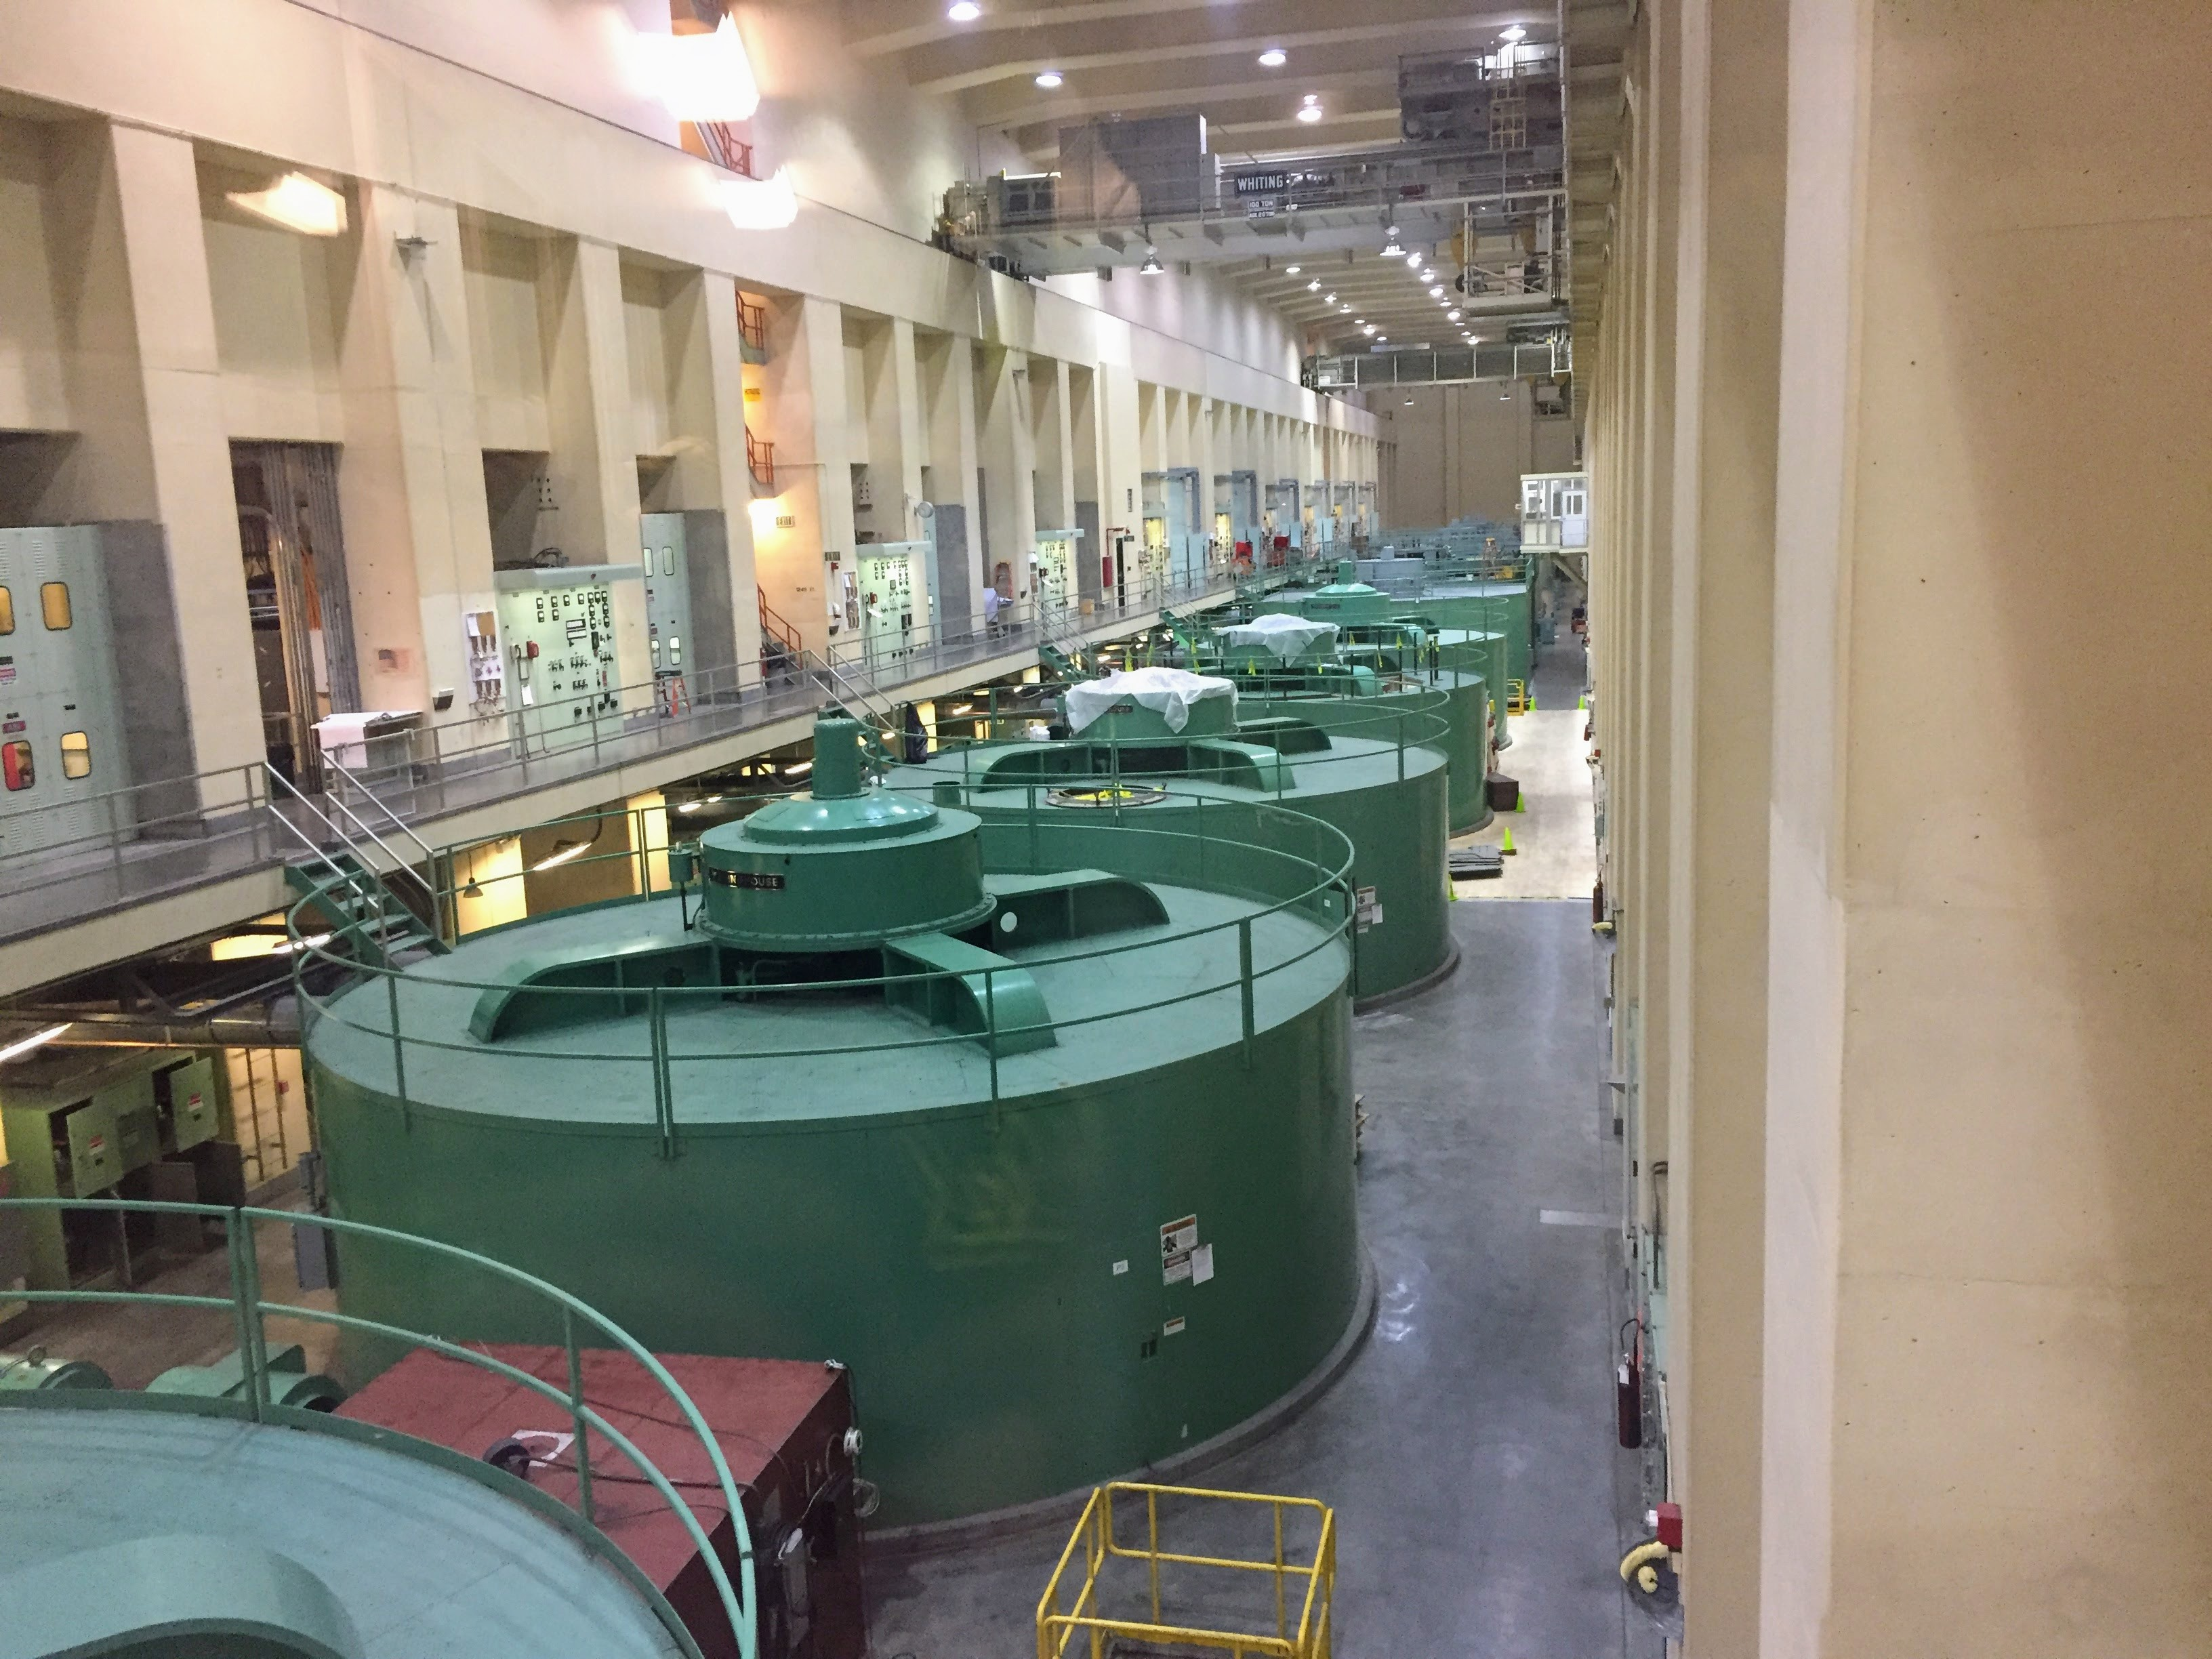 2017-09-23 Grand Coulee Dam 03 Powerhouse